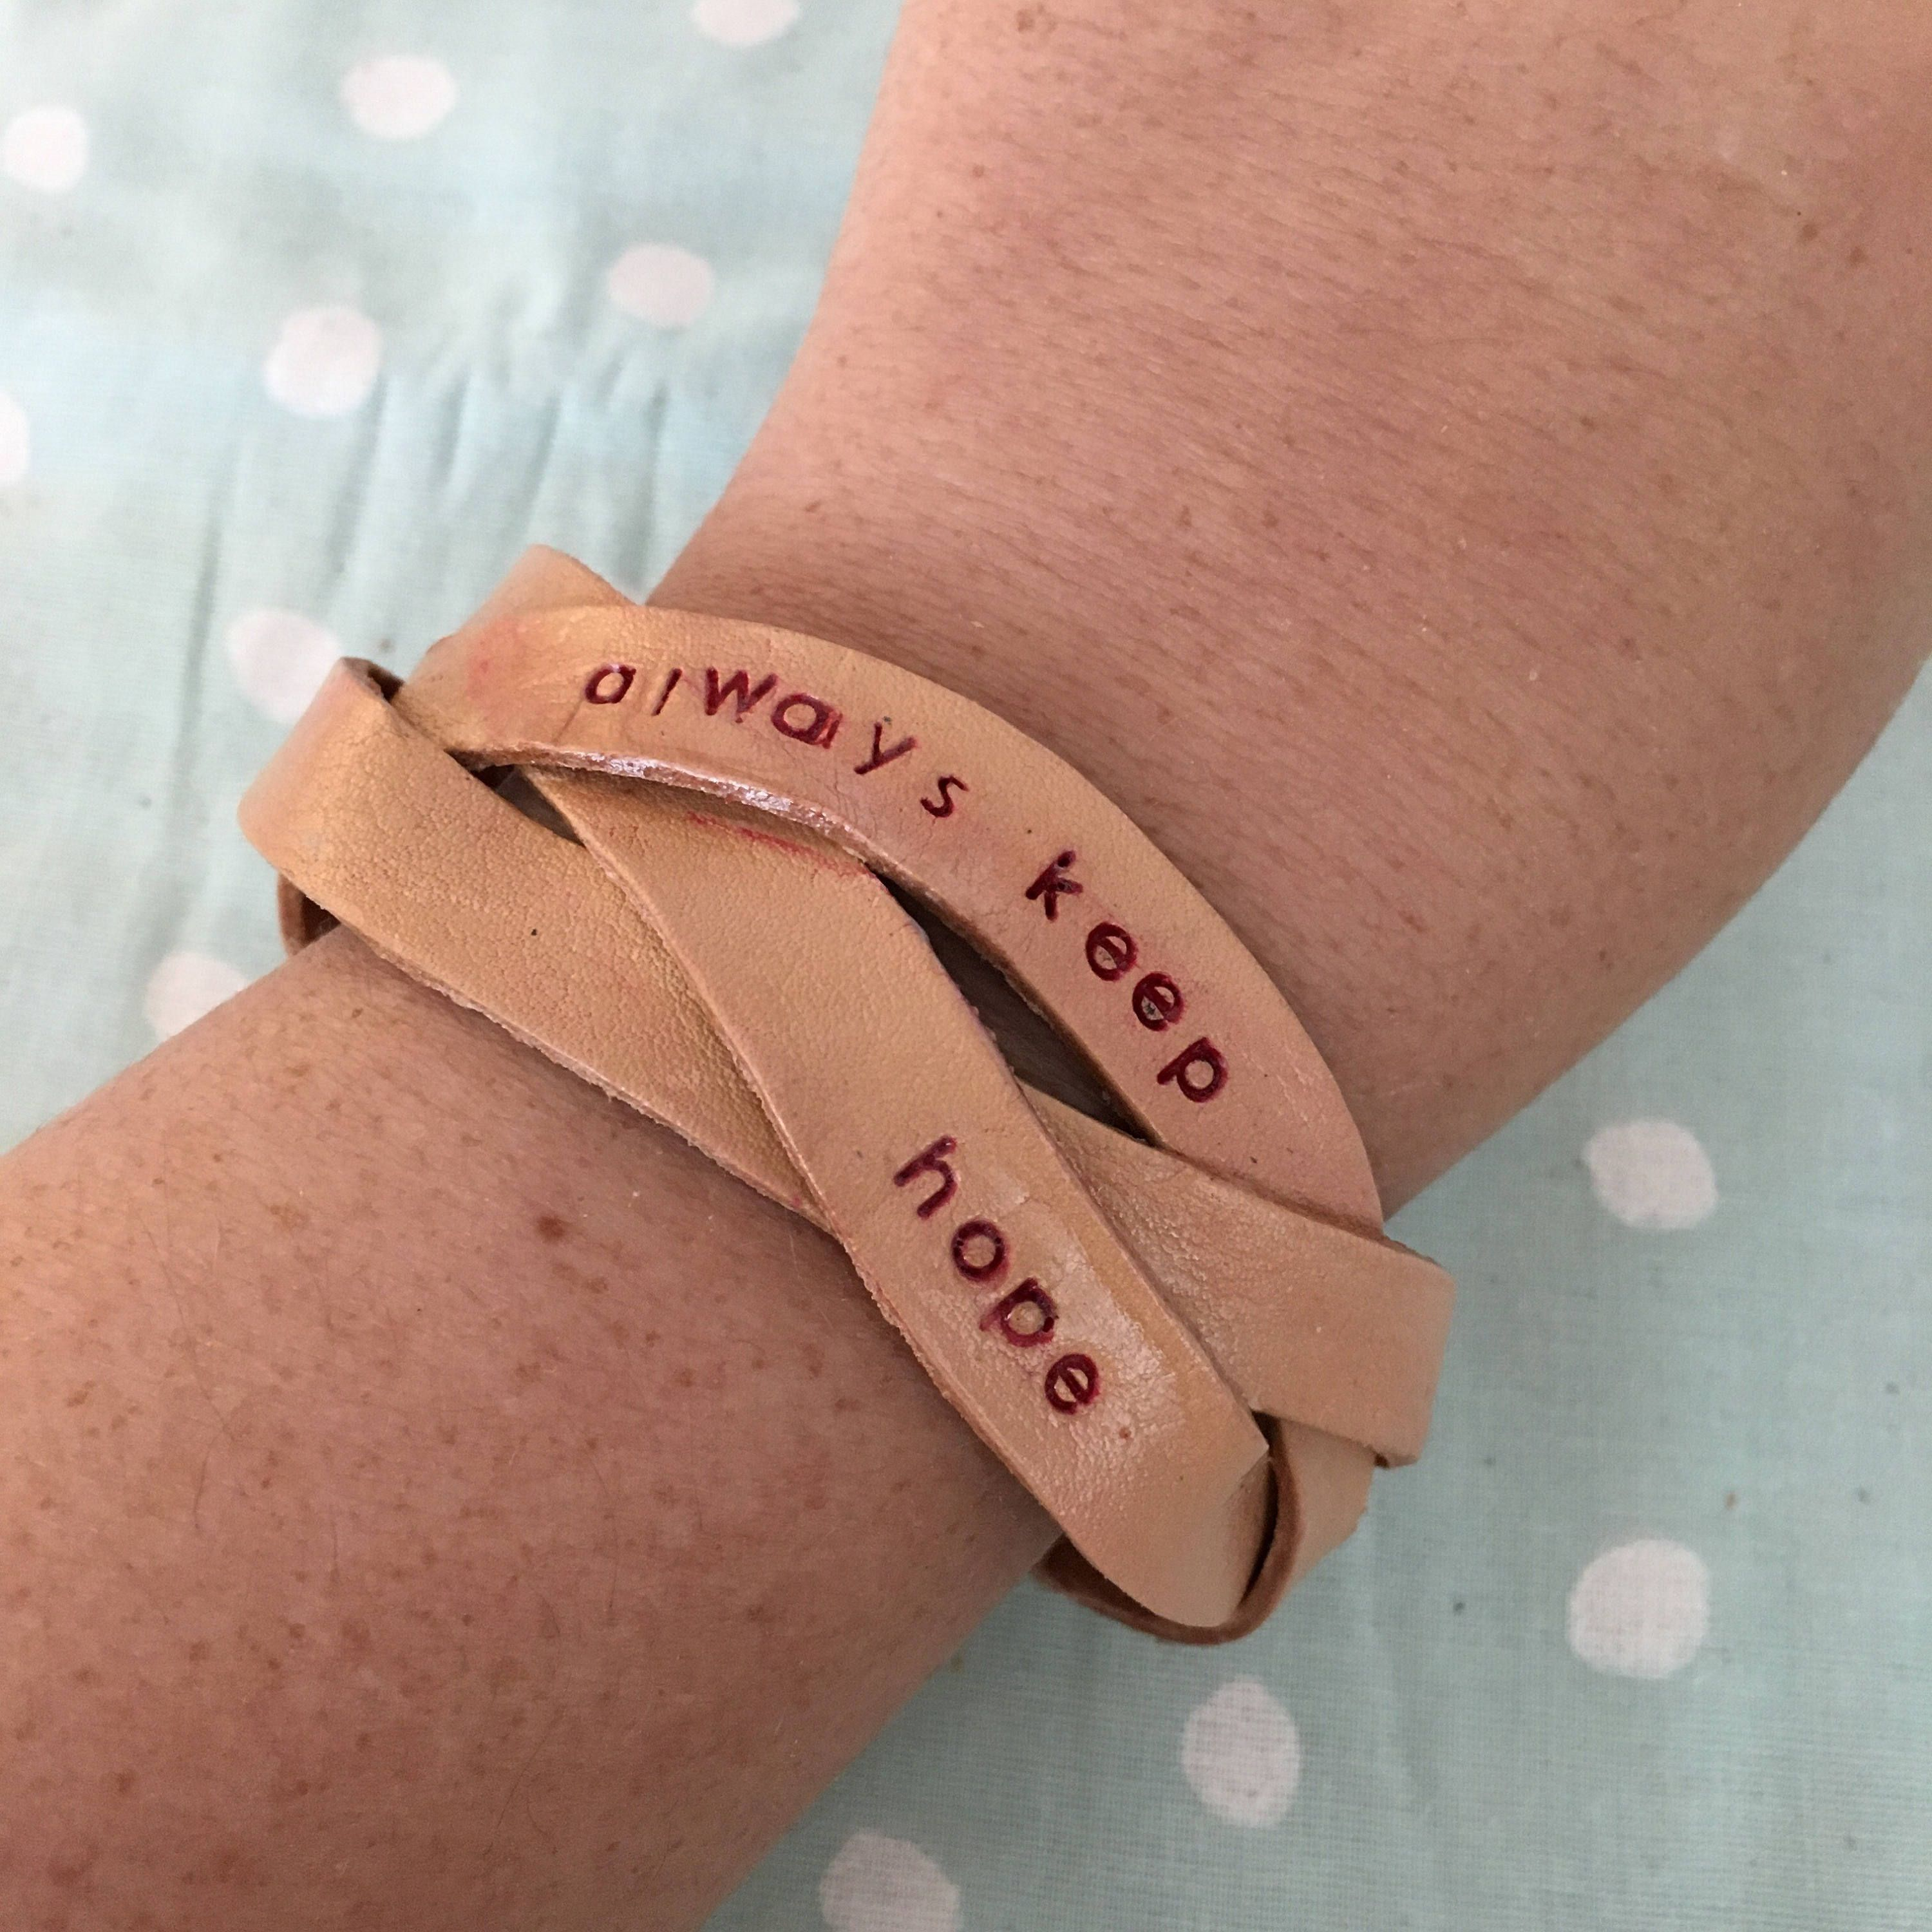 This unstained natural leather bracelet was hand stamped hand